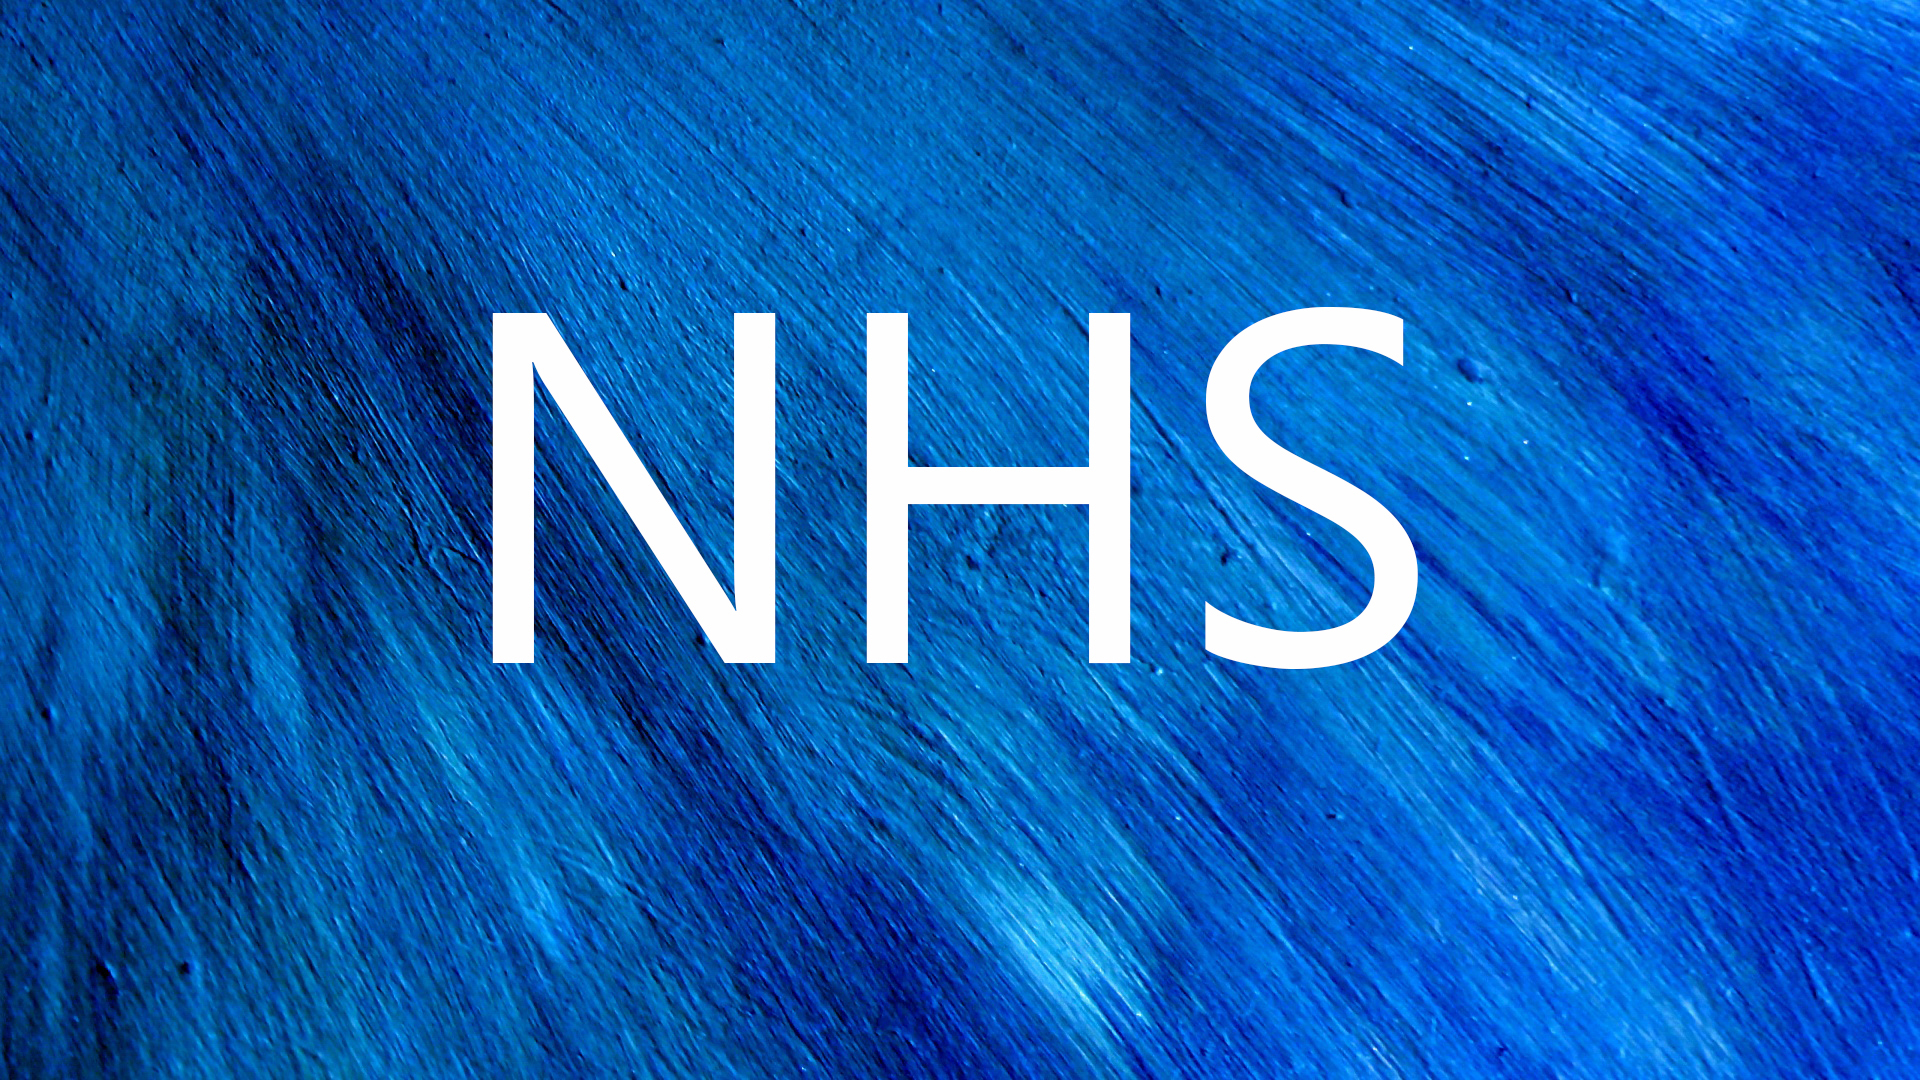 NHS- March Notes